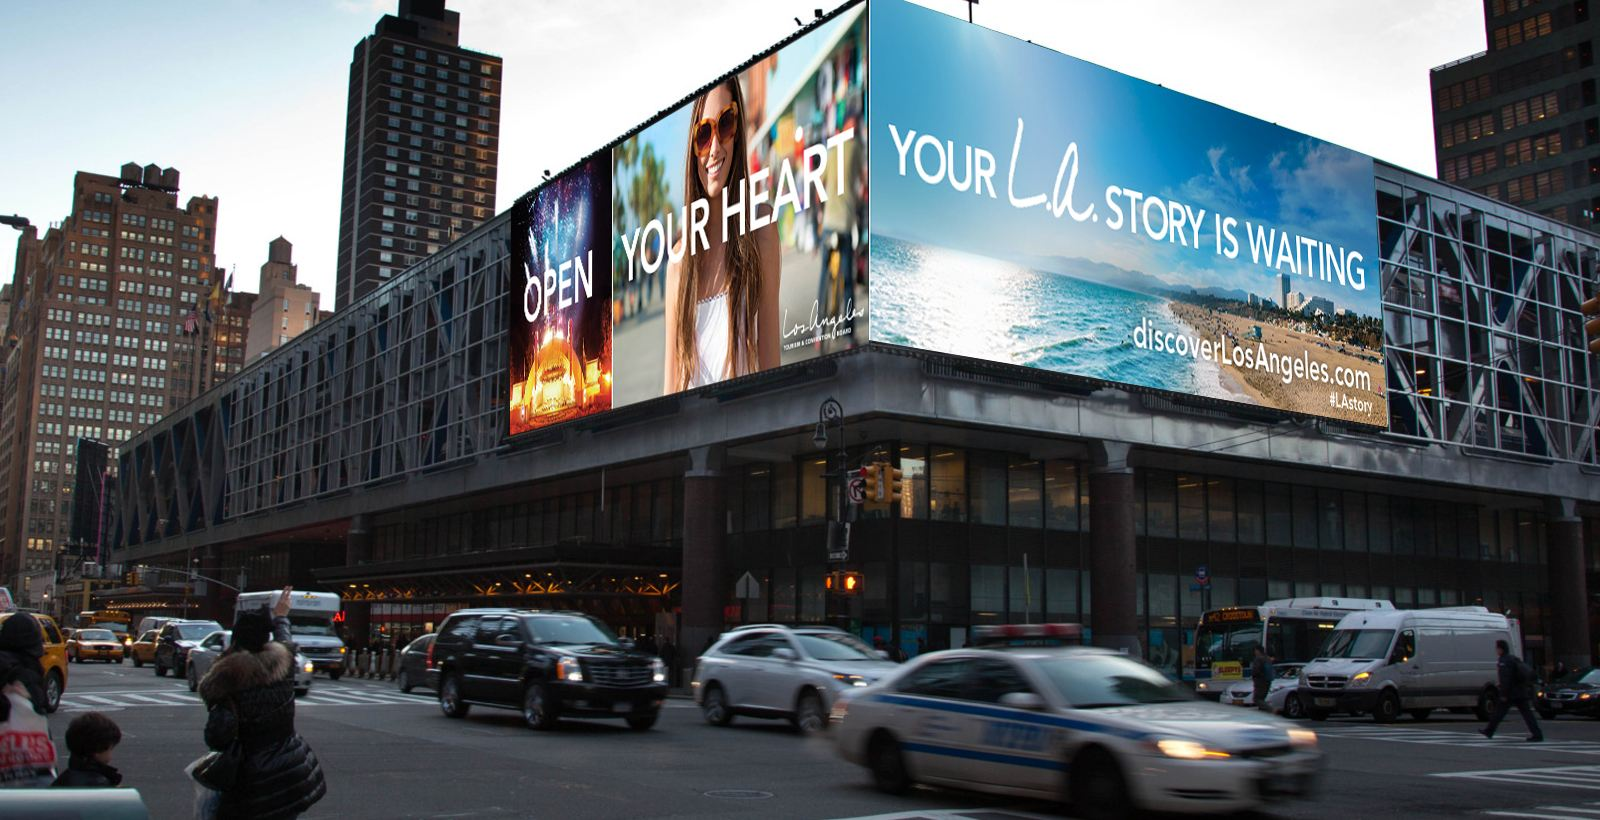 what's your LA story campaign billboard at NYC Port Authority building